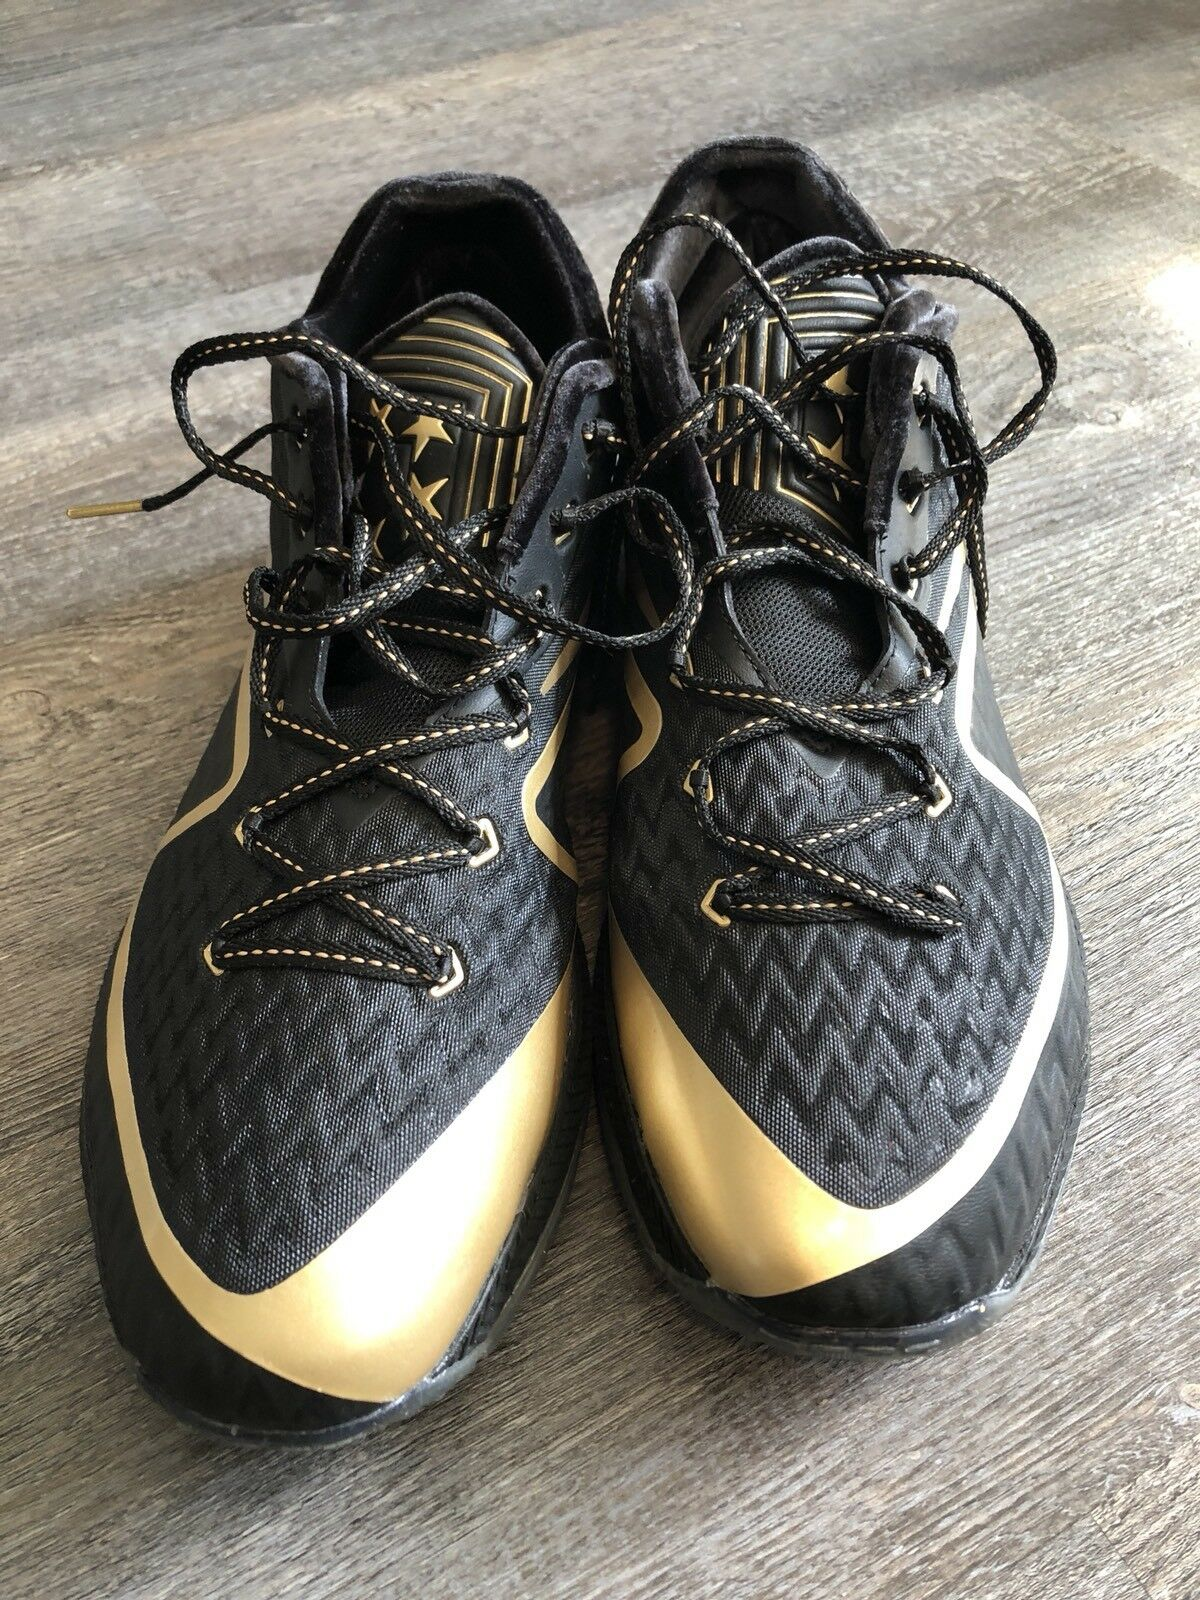 Nike Field General 2 (NFL) Super Bowl 50 SB50 Black Gold Sz 14